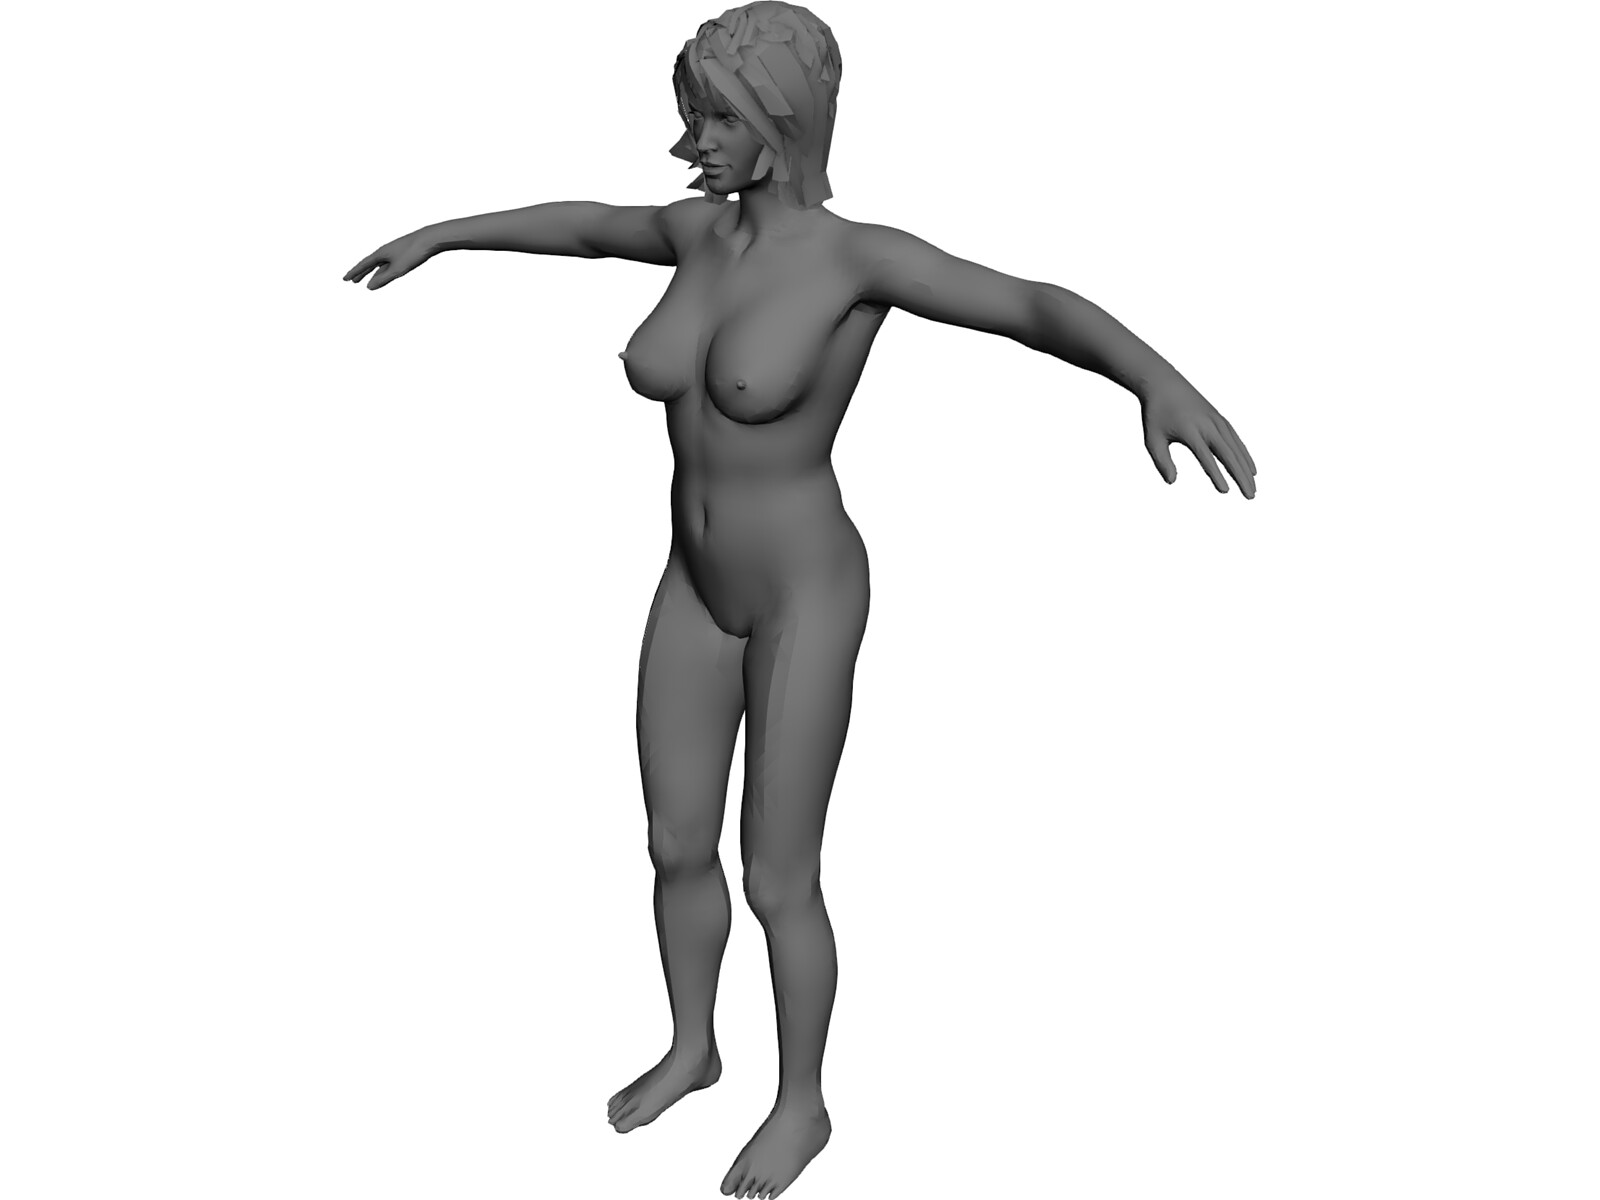 Female Anatomy Complete 3D Model - 3D CAD Browser